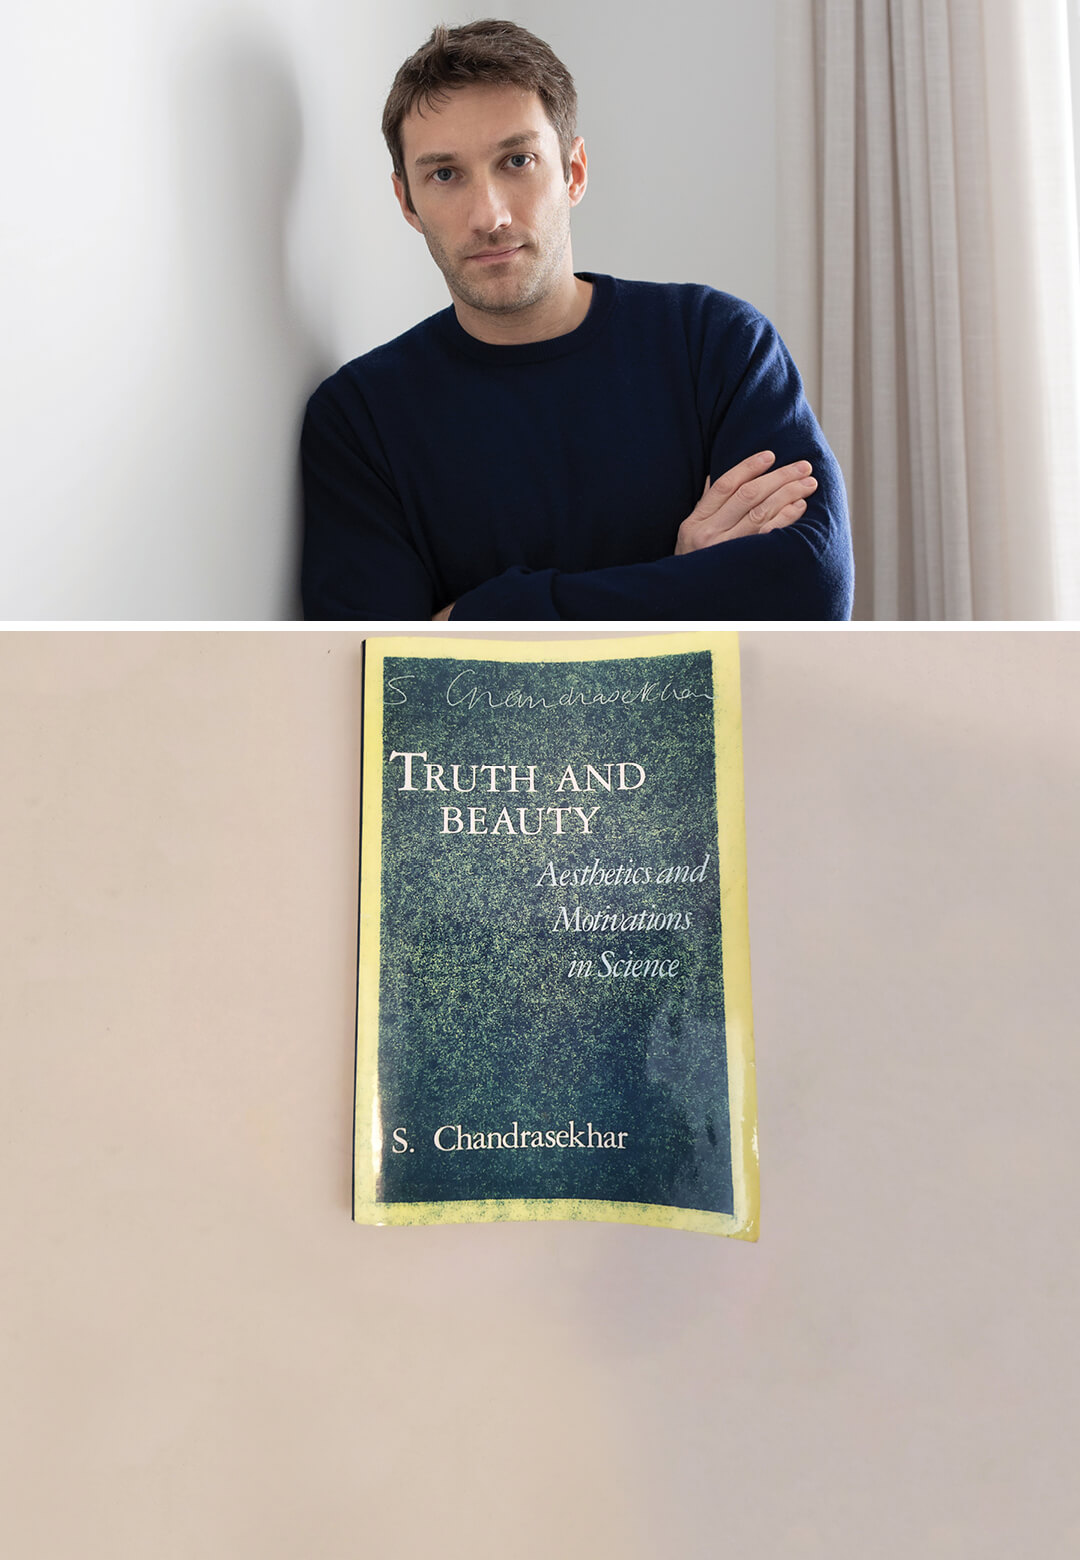 Philipp Aduatz (left) is engrossed in reading Truth and Beauty - Aesthetics and Motivations in Science by Subrahmanyan Chandrasekhar   What am I Reading: Philipp Aduatz   Truth and Beauty - Aesthetics and Motivations in Science   STIRworld